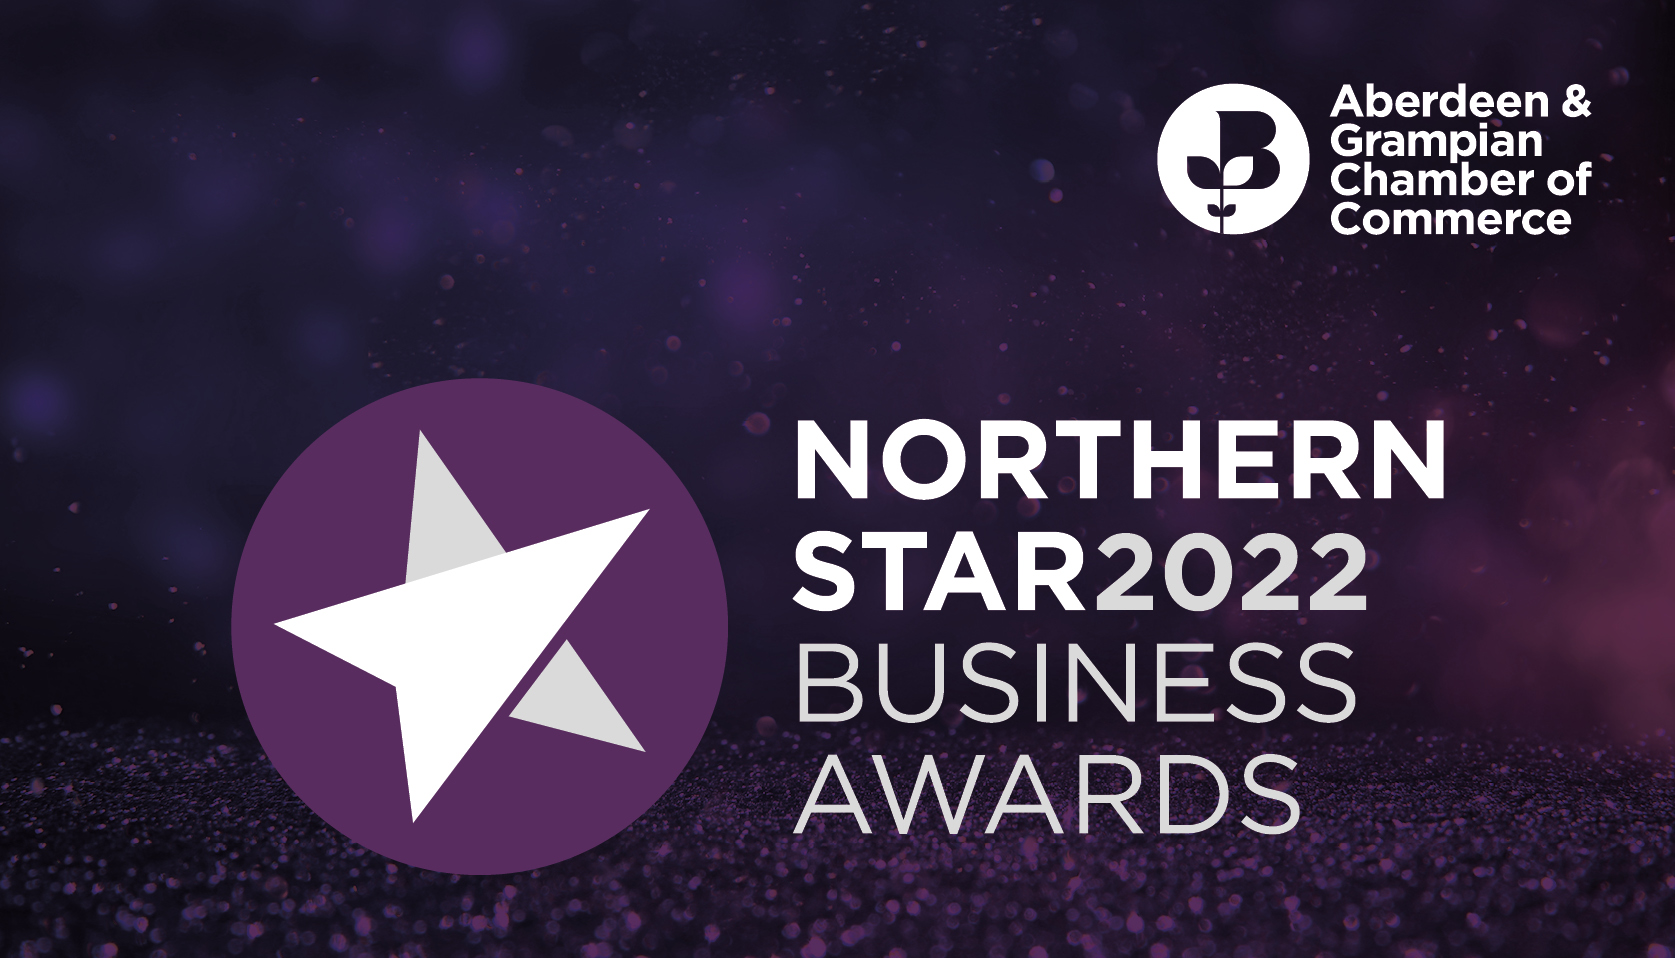 Northern Star Business Awards Finalists Reception